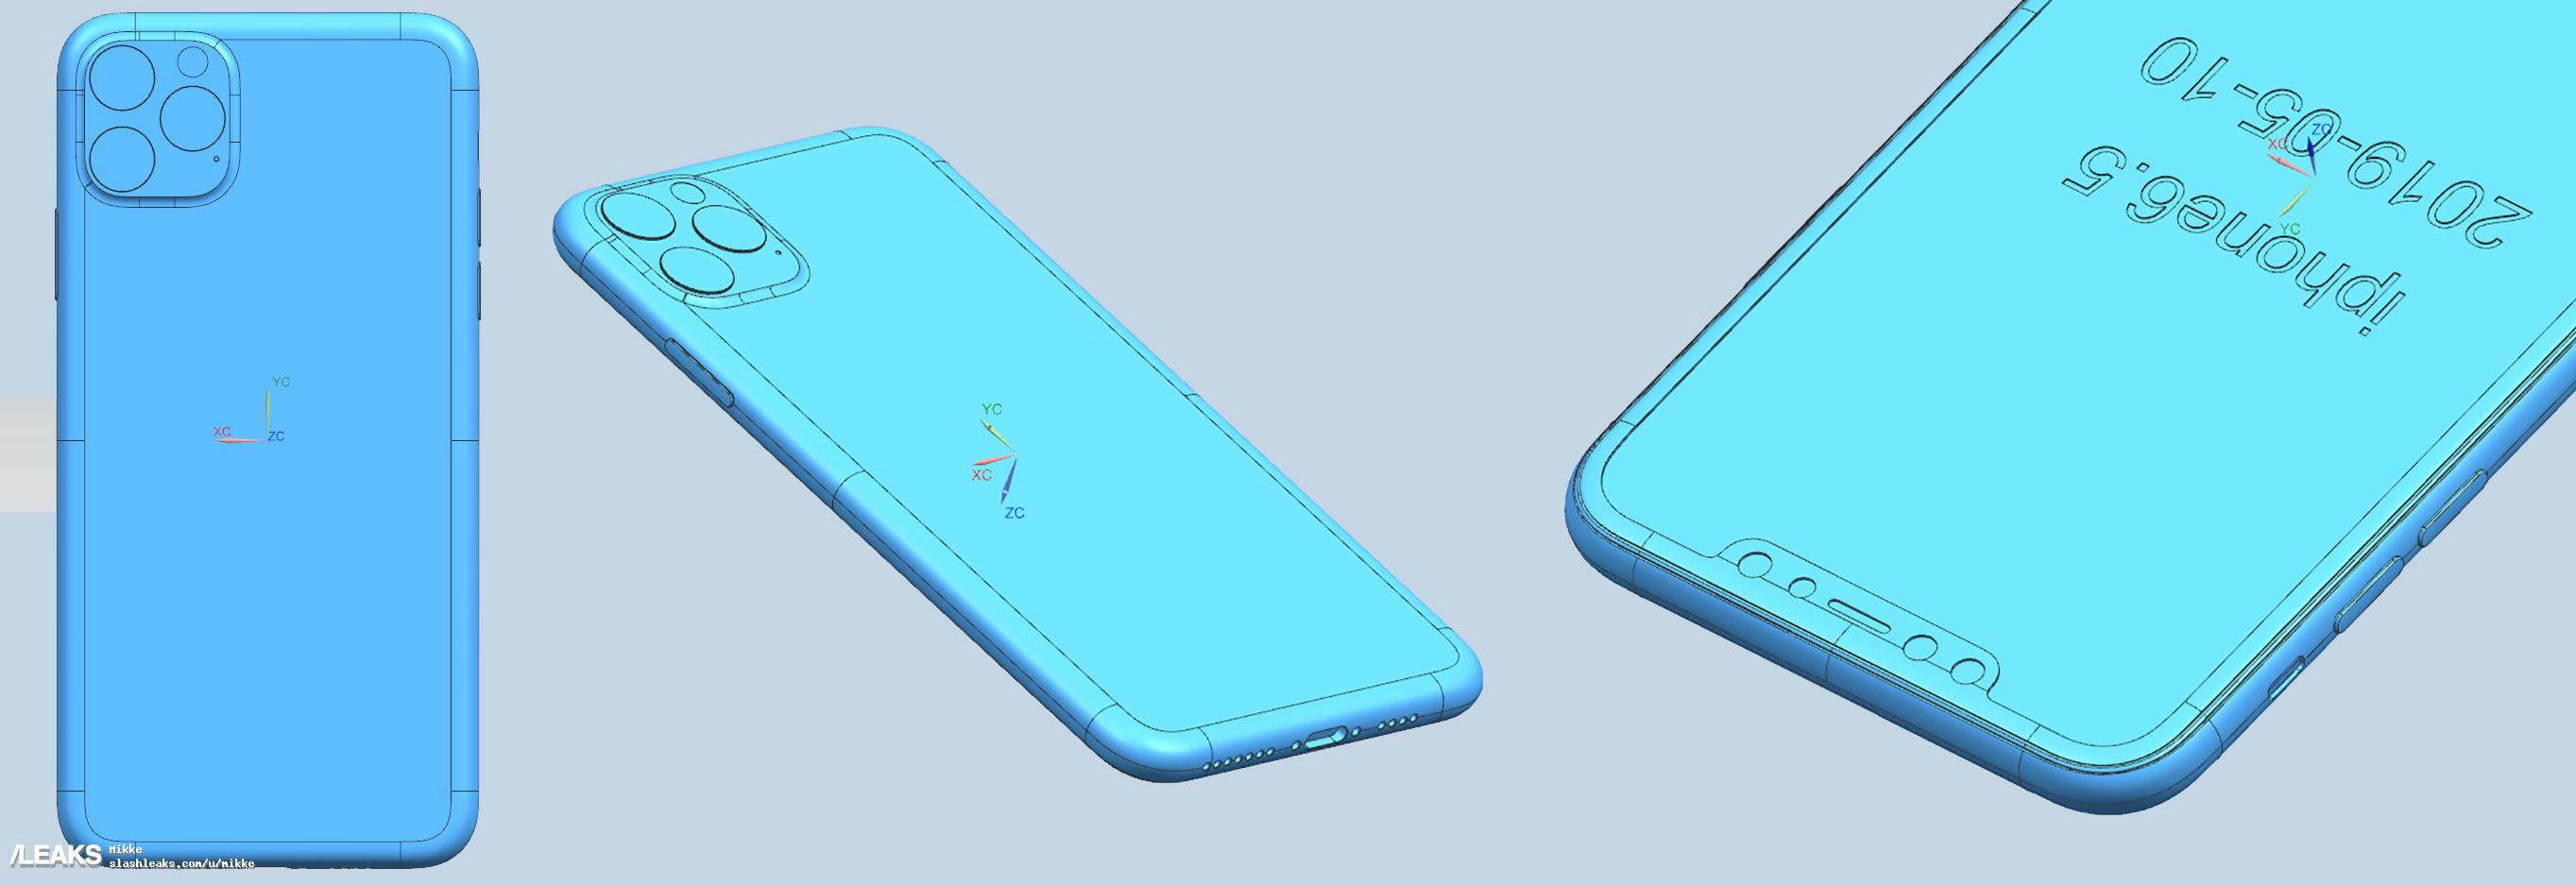 New leaked iPhone 11 renders show the rear camera design 4